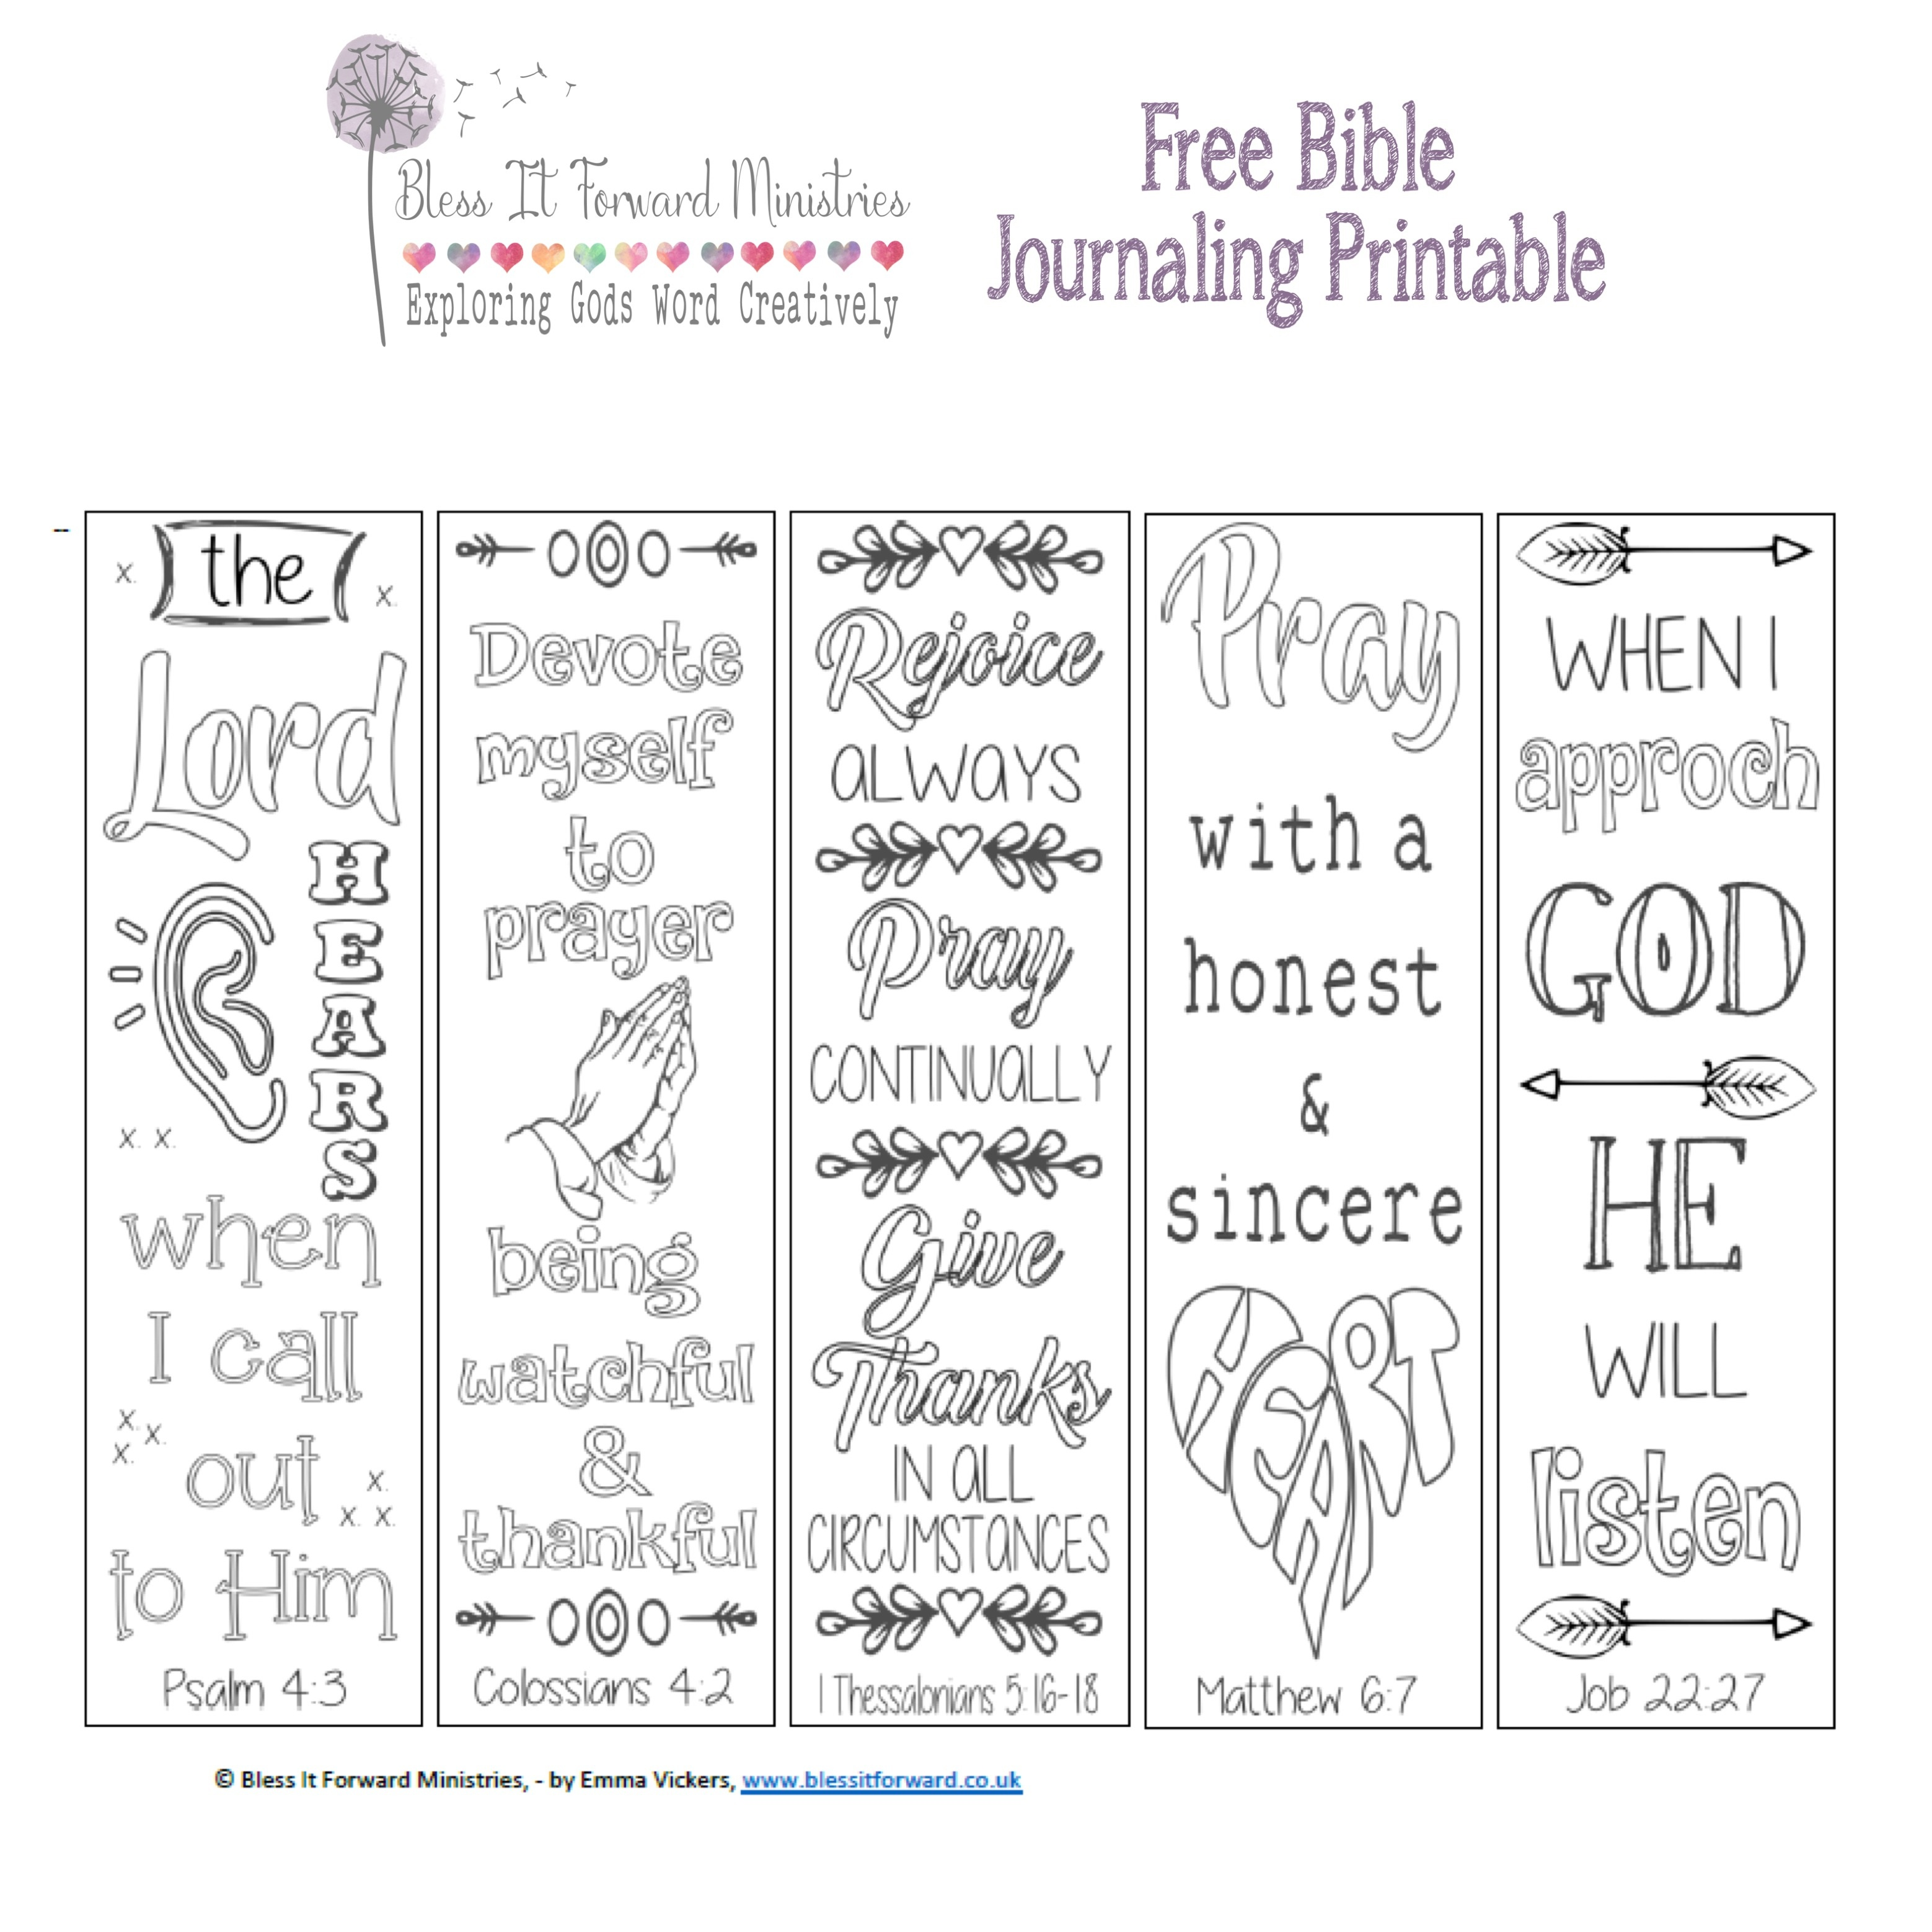 Bless It Forward Ministries - Free Printables - Free Bible Journaling Printables